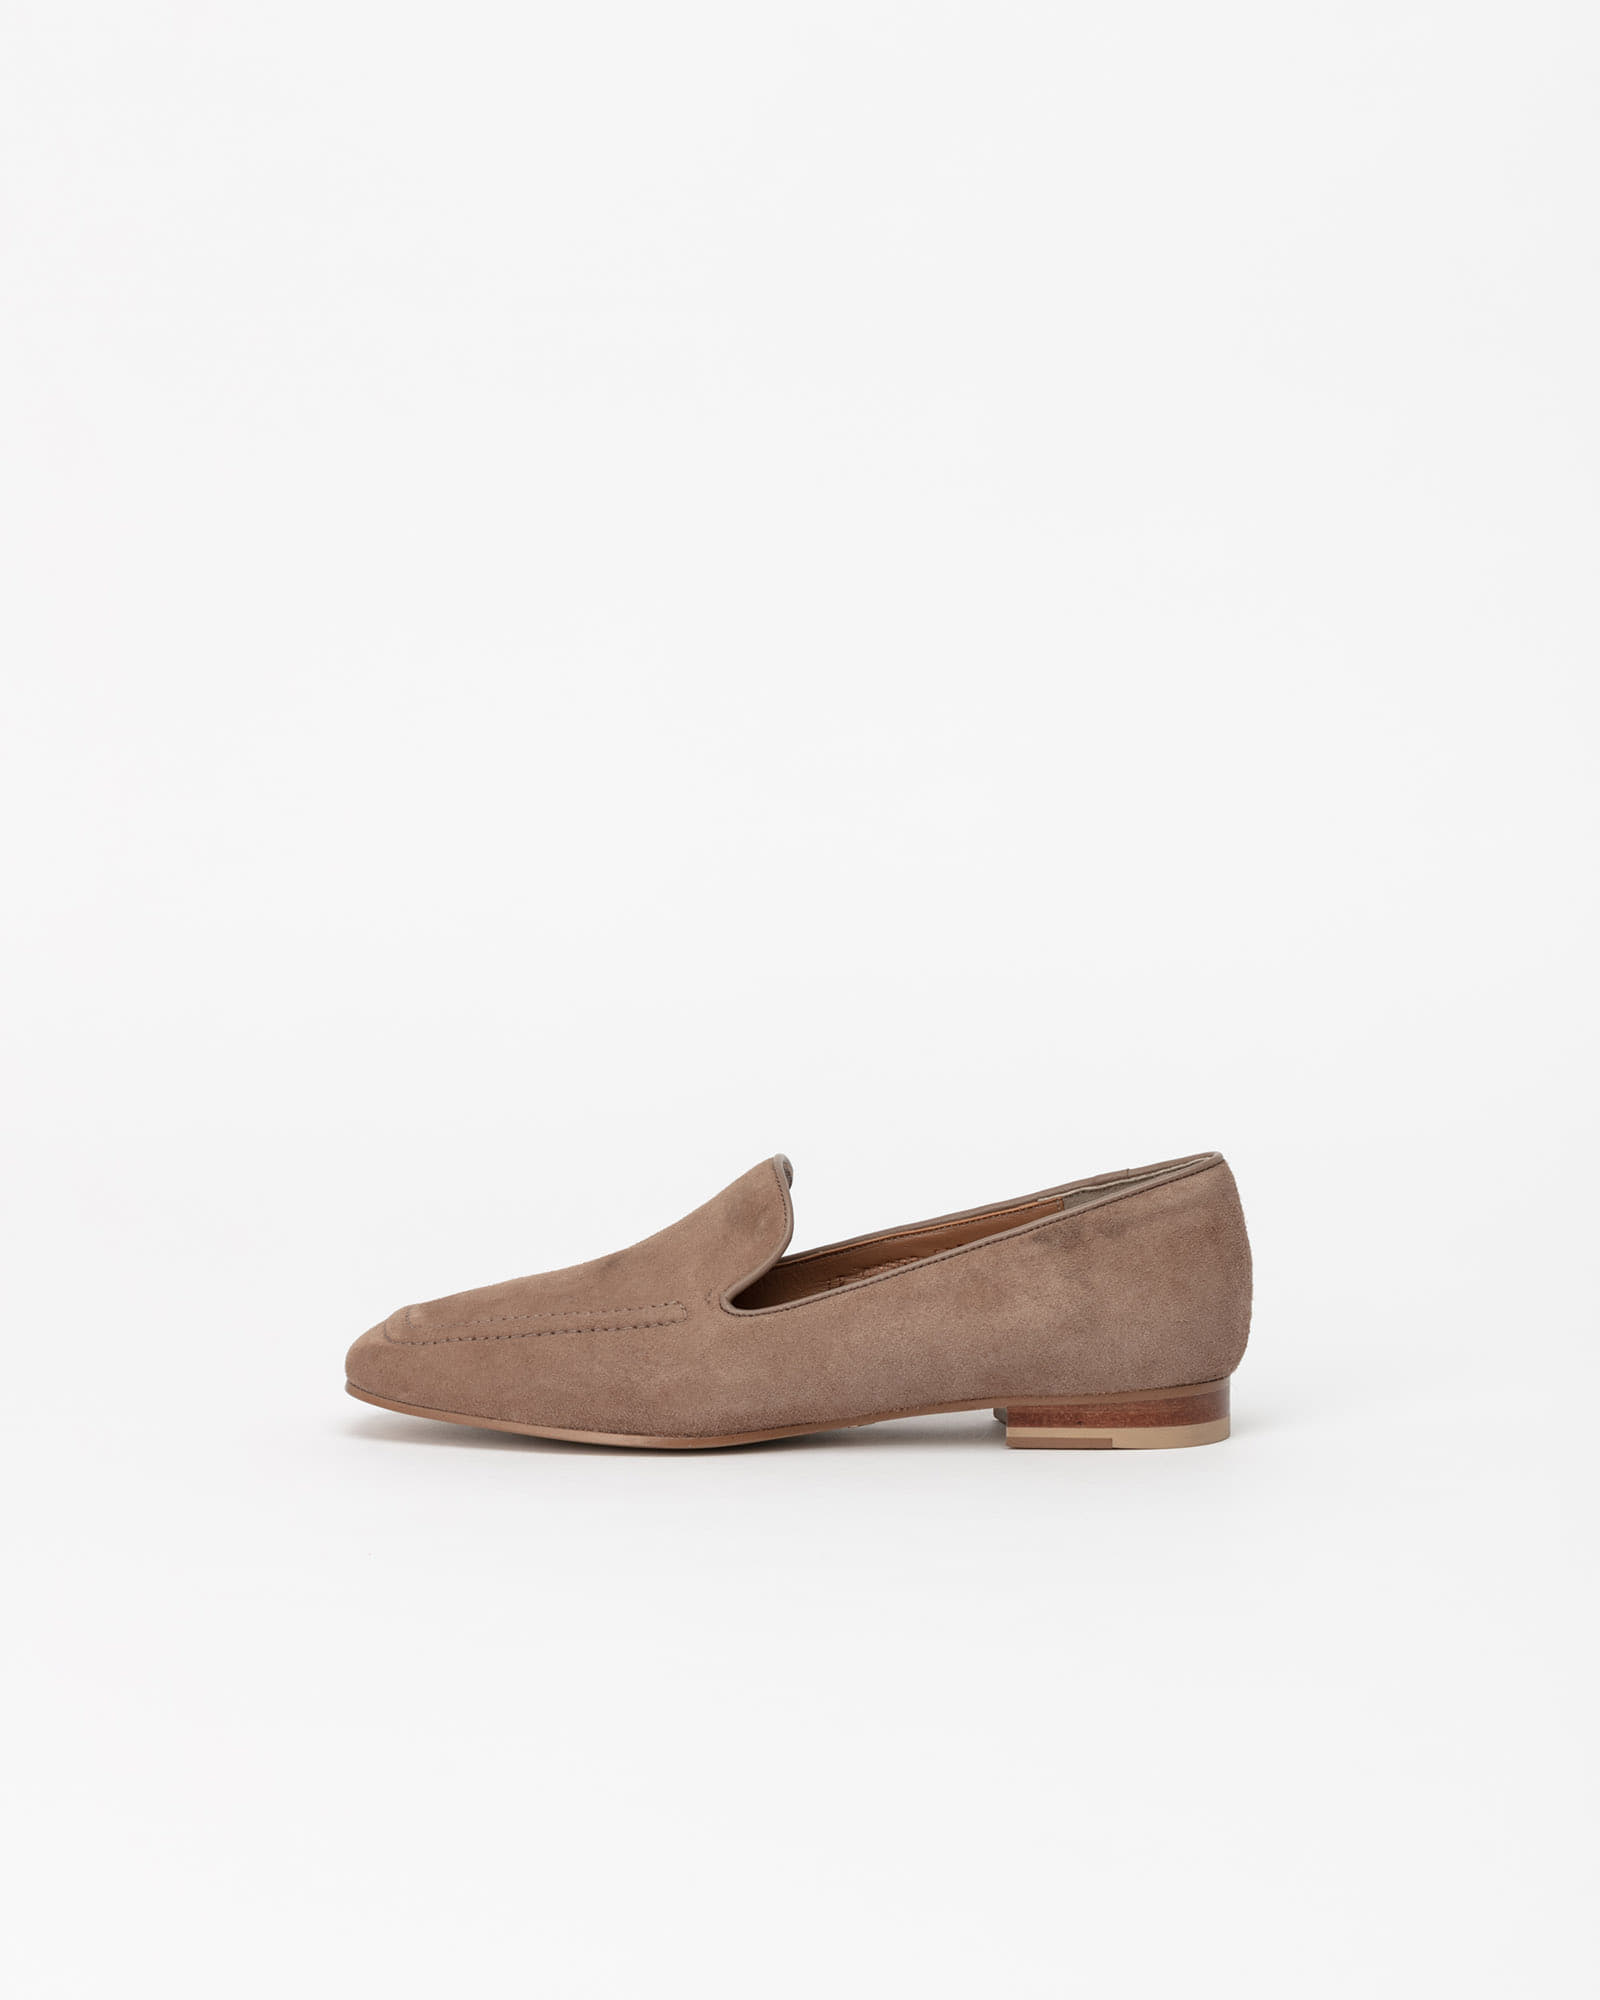 Buffon Slip-on Loafers in Cocoa Suede